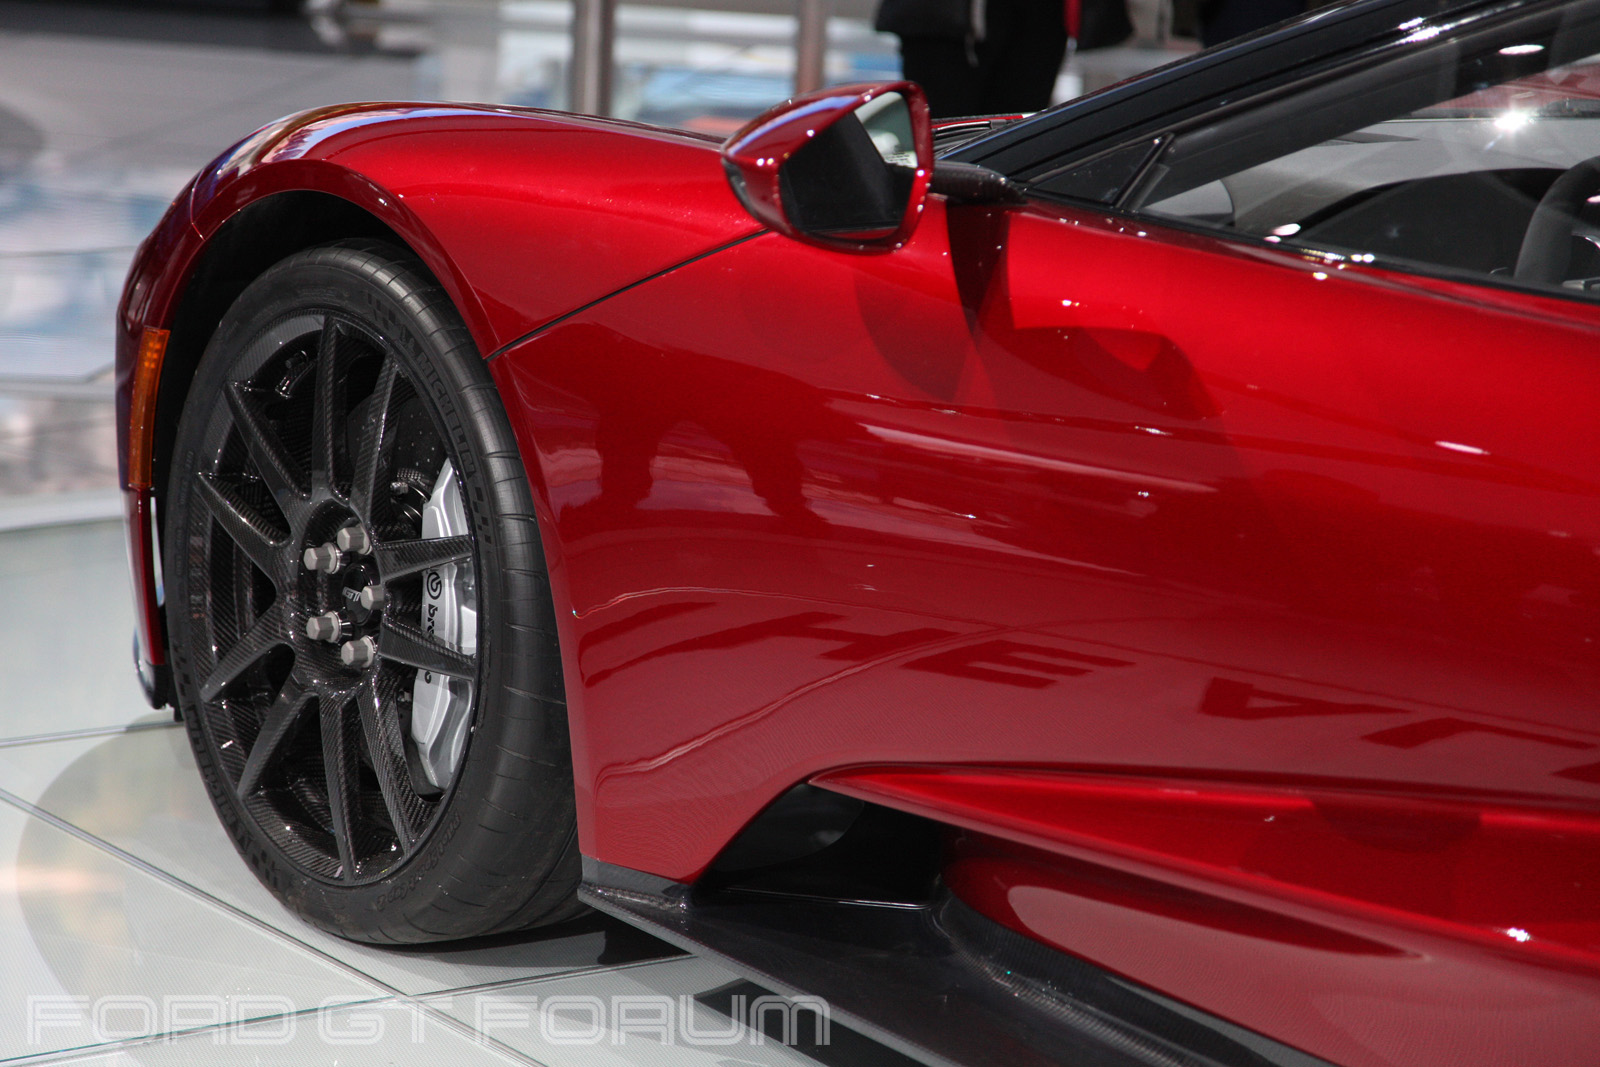 Ford-GT-Autoshow-3000-16